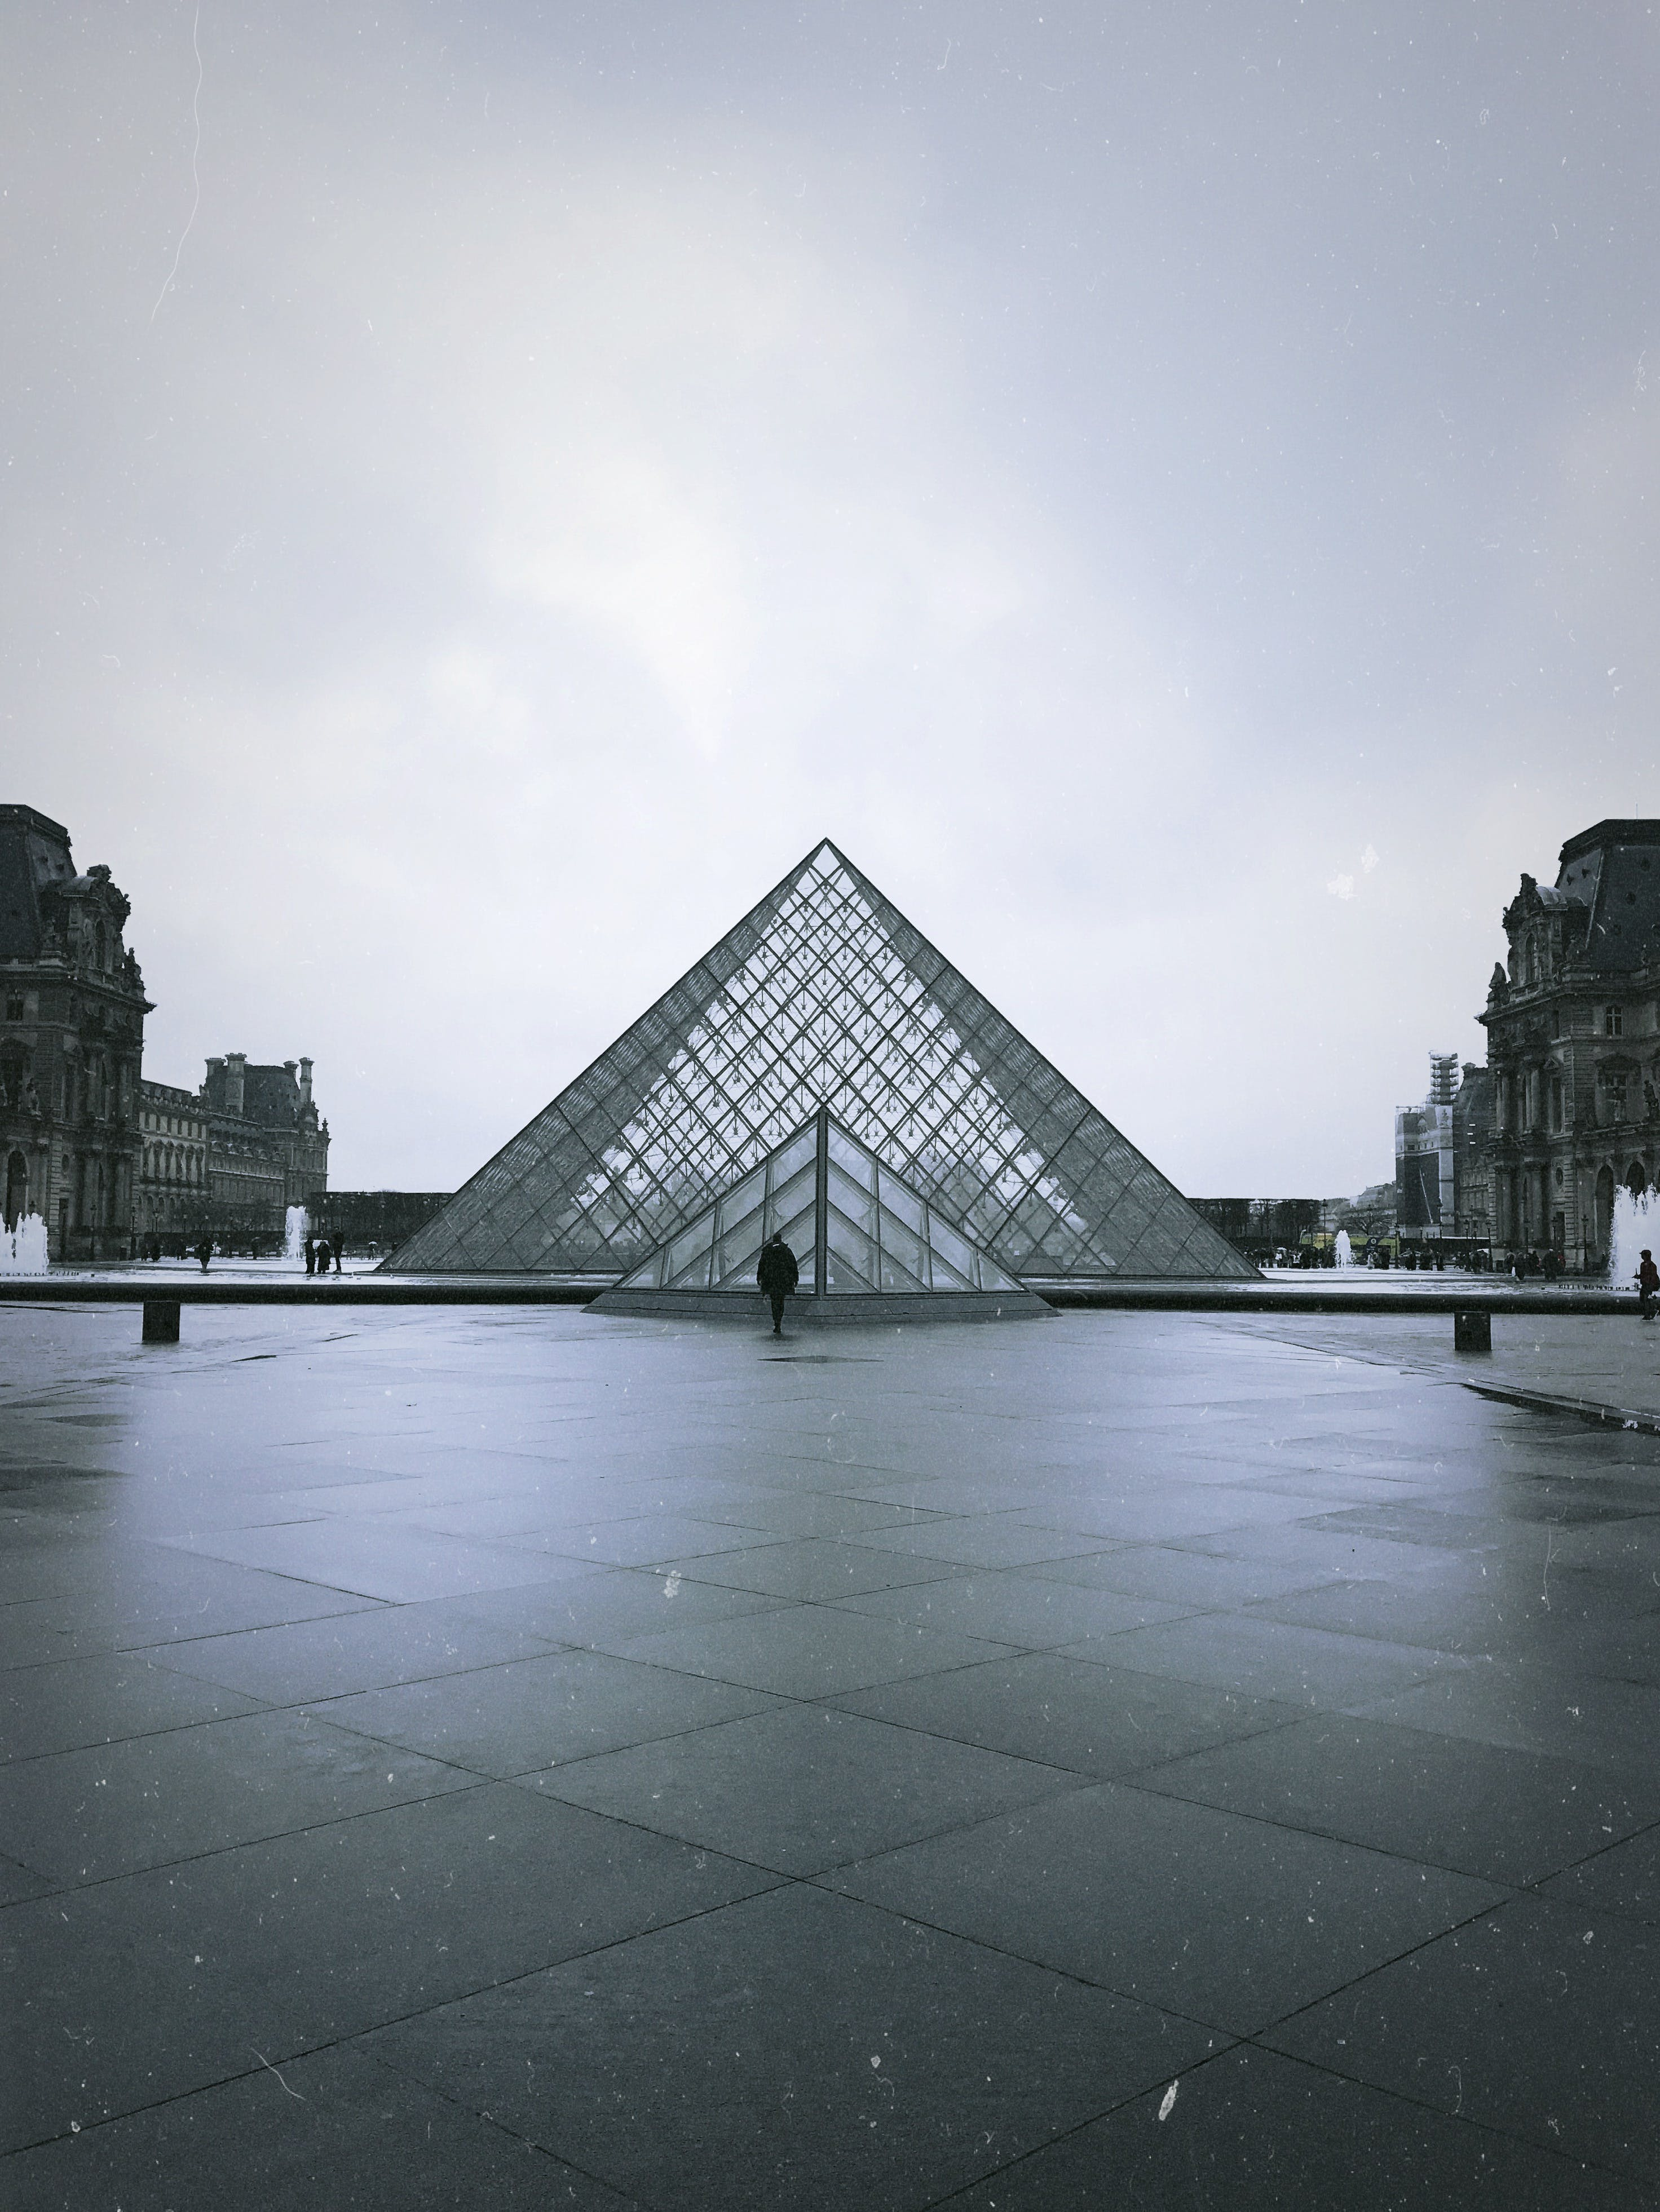 Le Grand Louvre in Paris